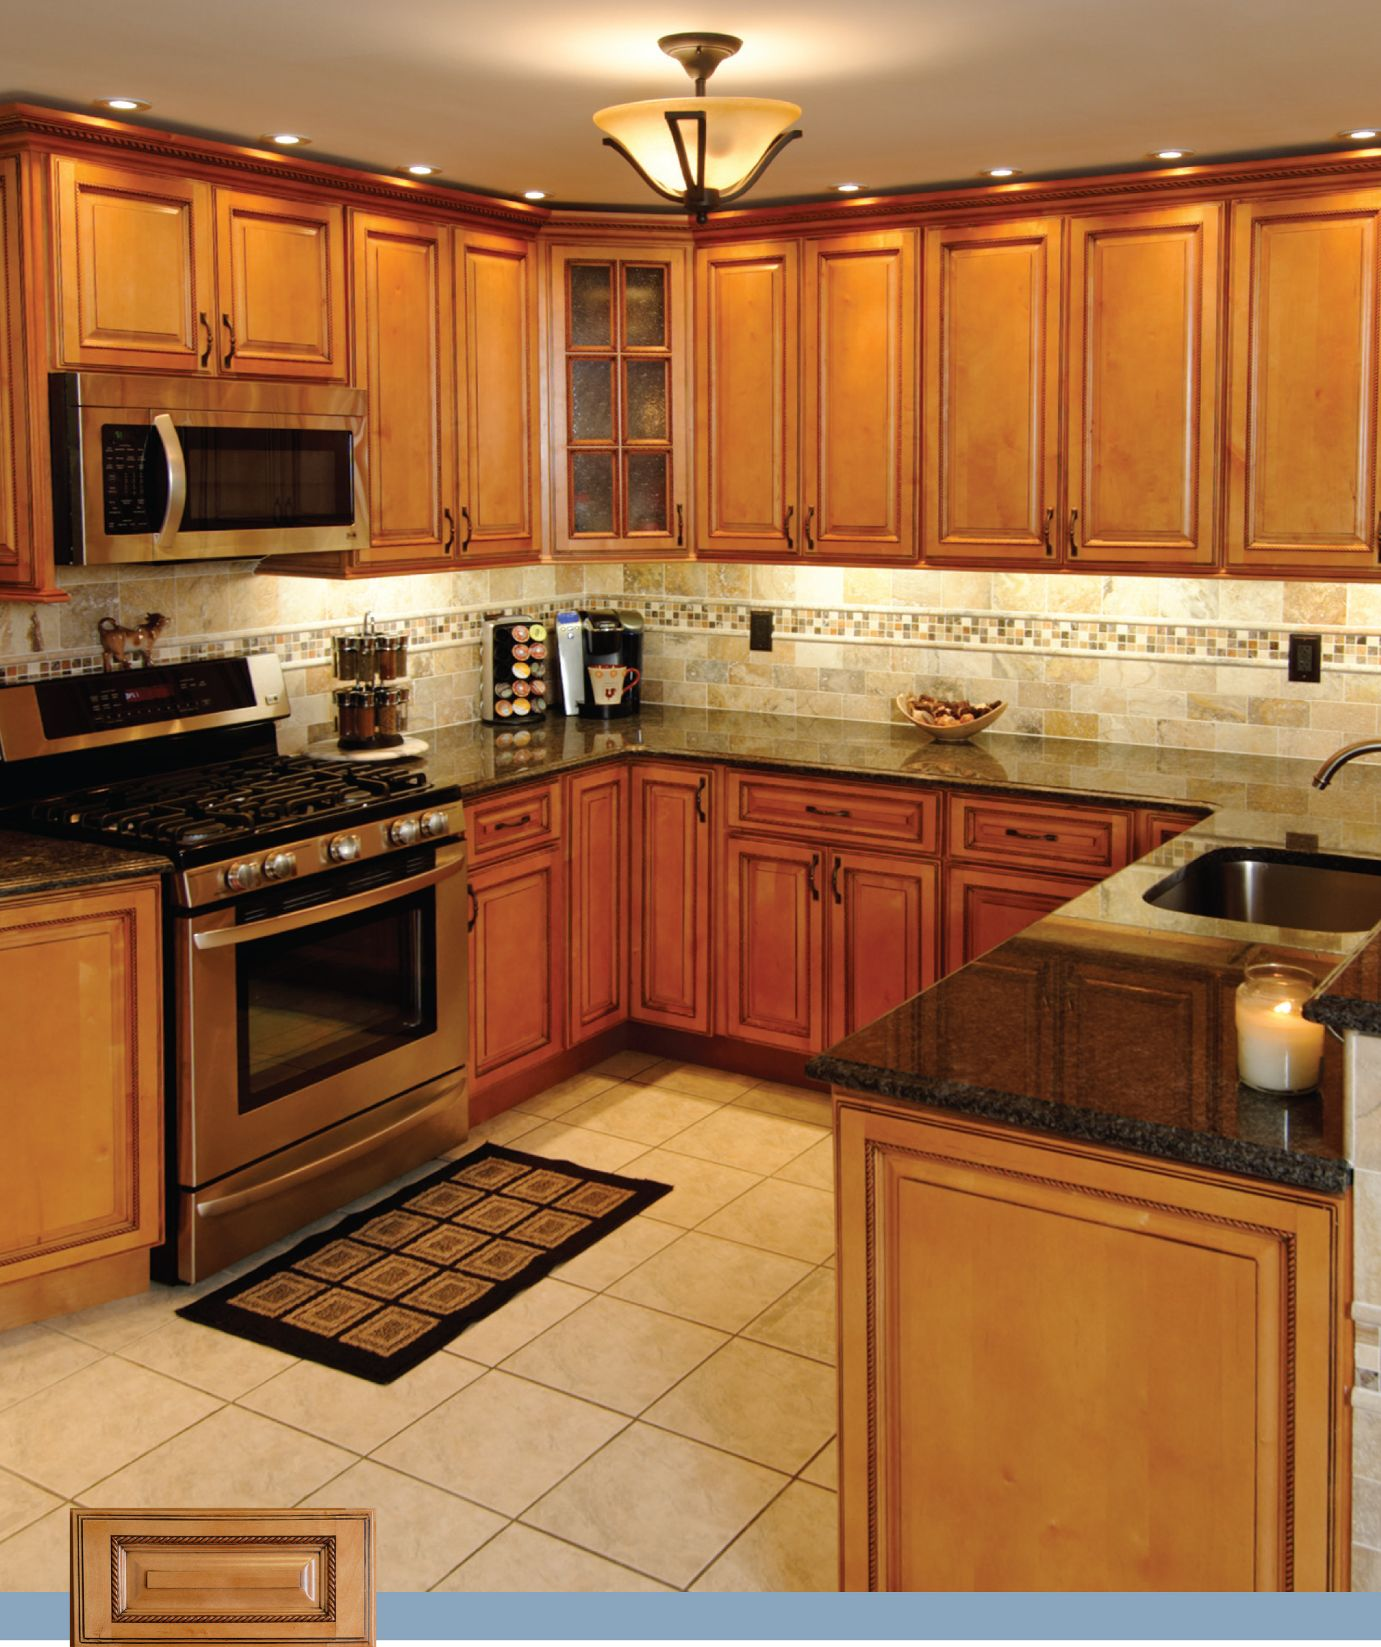 Appliances kitchen Photo - 10